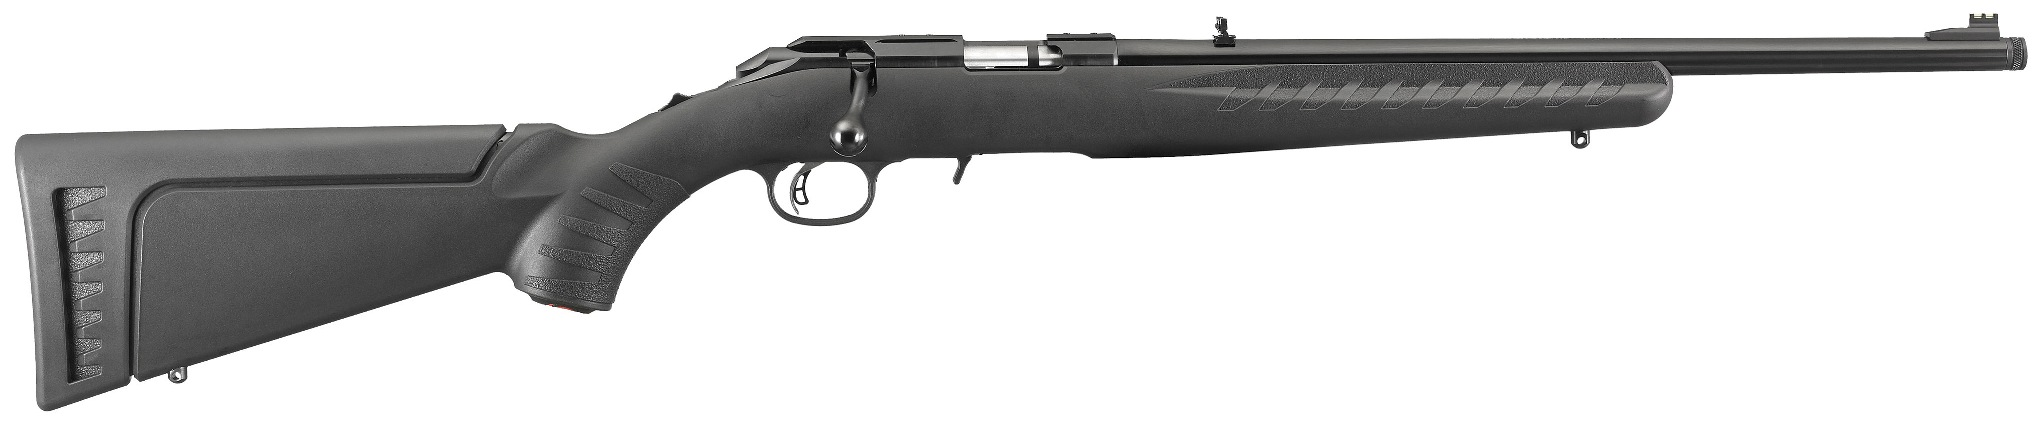 Ruger American Rim Compact